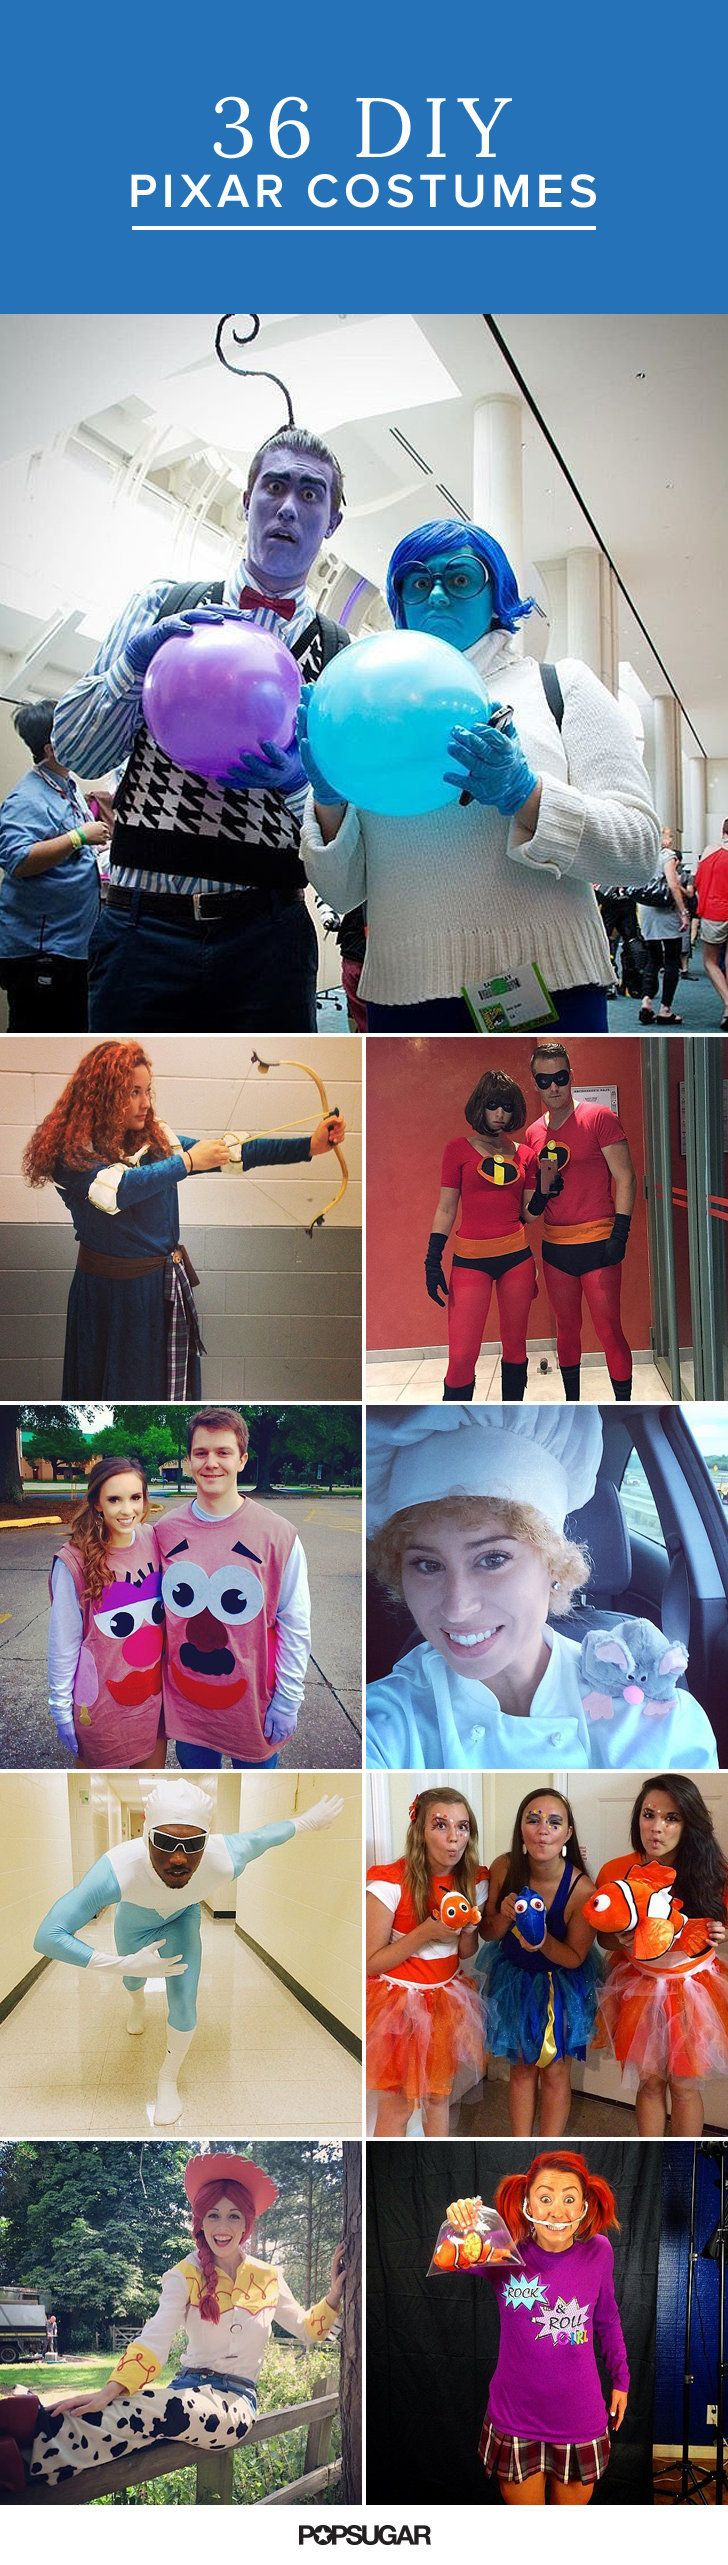 Some of our favorite movies from the past 20 years have come out of the animation studio. If you're a true fan, you'll want to dress up like your favorite characters from Pixar movies.